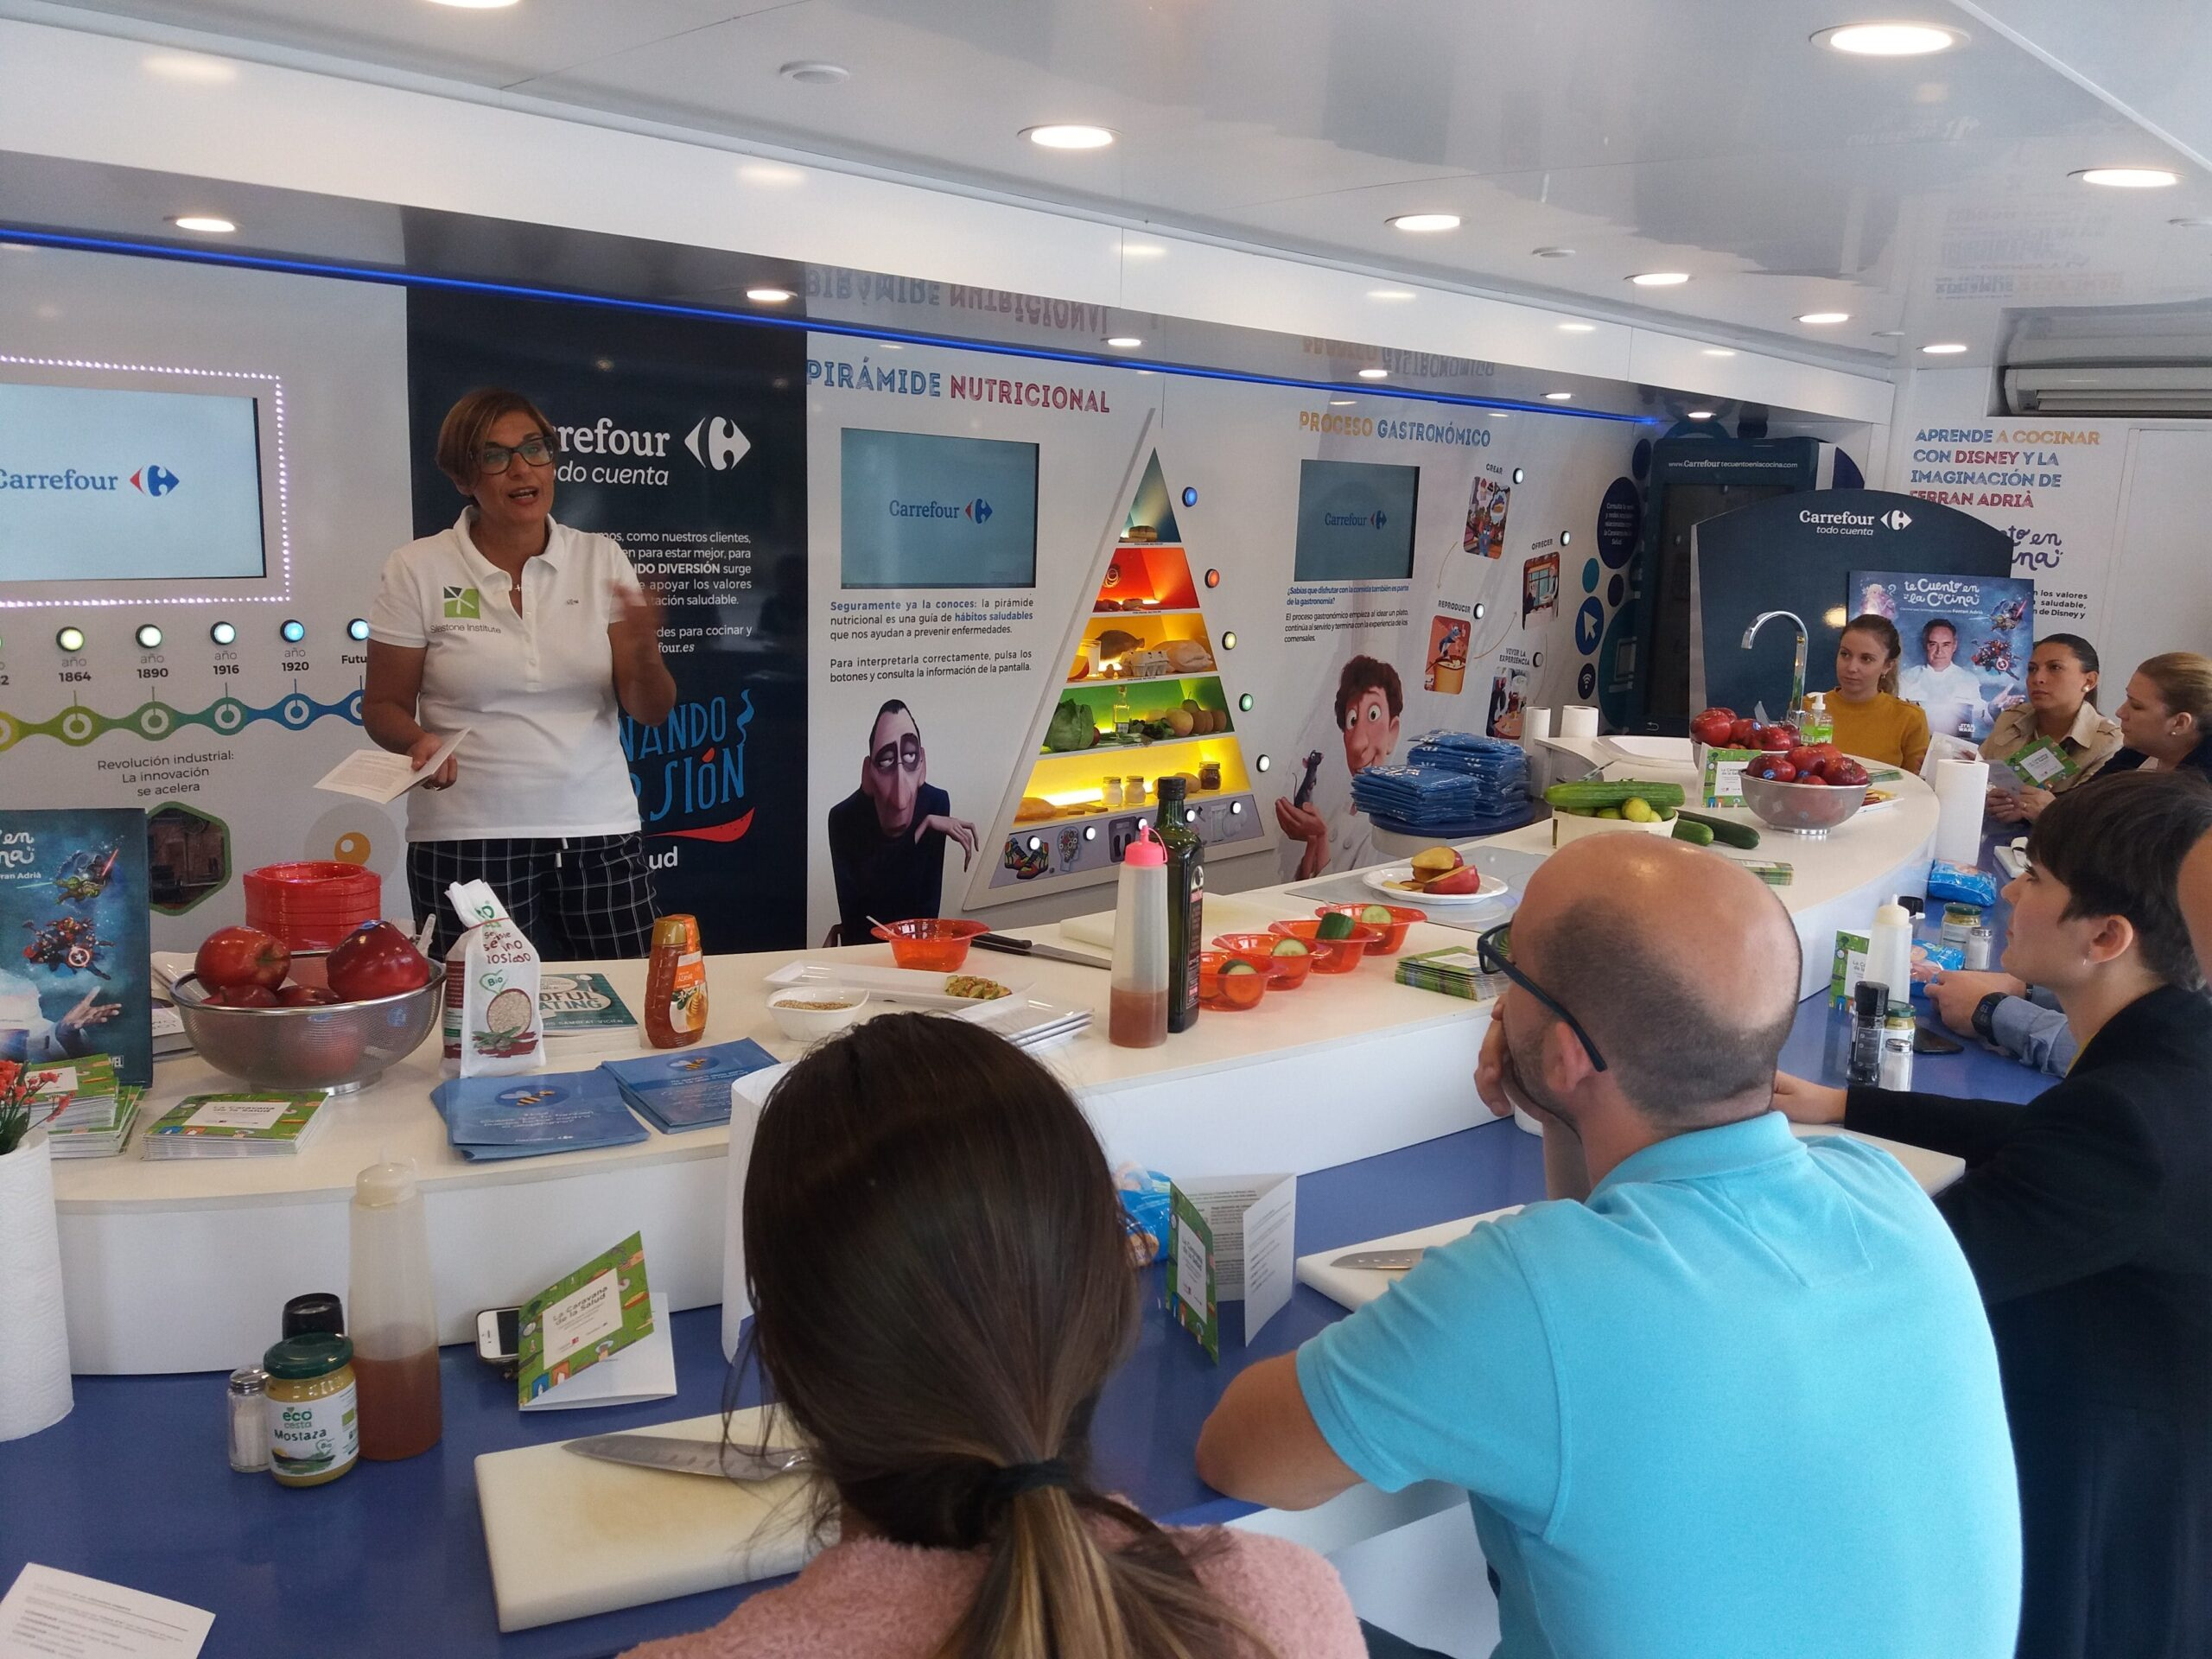 Image of InstitutoSilestone CaravanadelaSalud en Cosentino 7 1 1 scaled in Cosentino promotes good nutrition and food safety - Cosentino